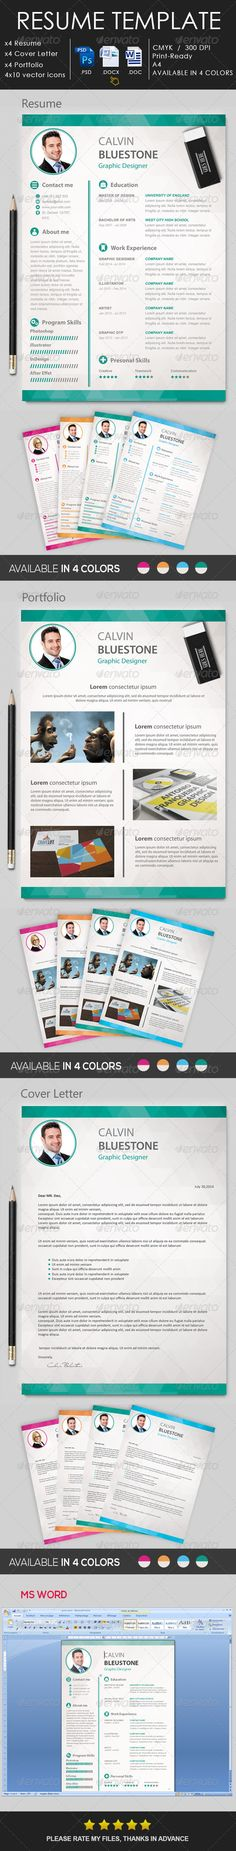 Simple Resume\/Cv Bundle Volume 2 Simple, Resume and Stationery - television producer resume